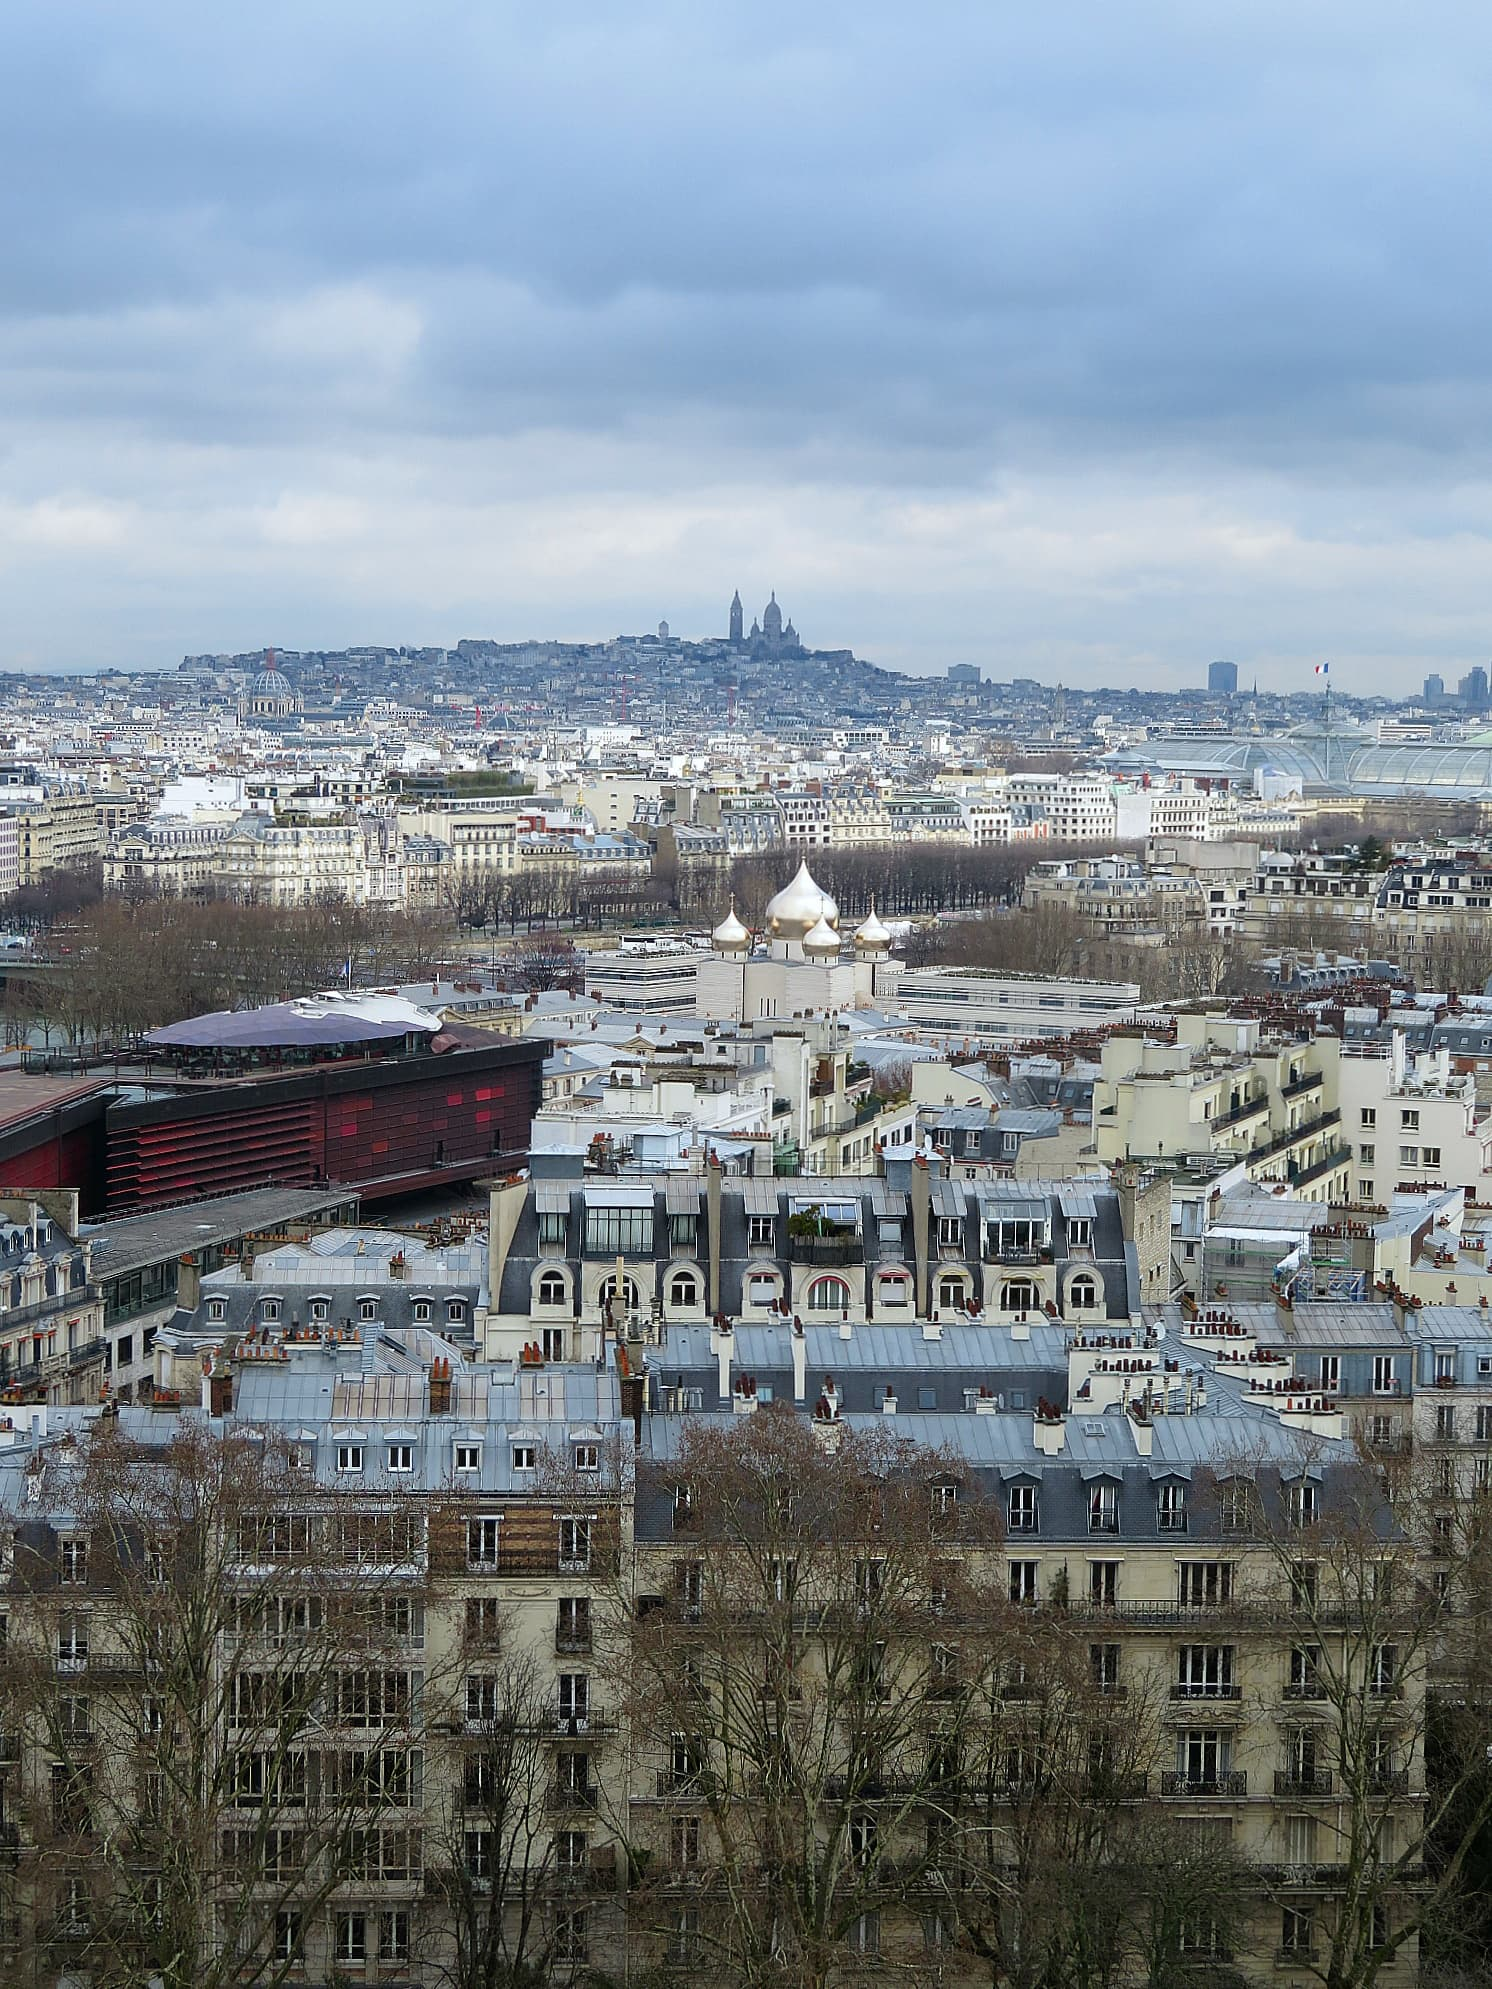 View of Paris, including Montmartre, from the second level of the Eiffel Tower in Paris with kids